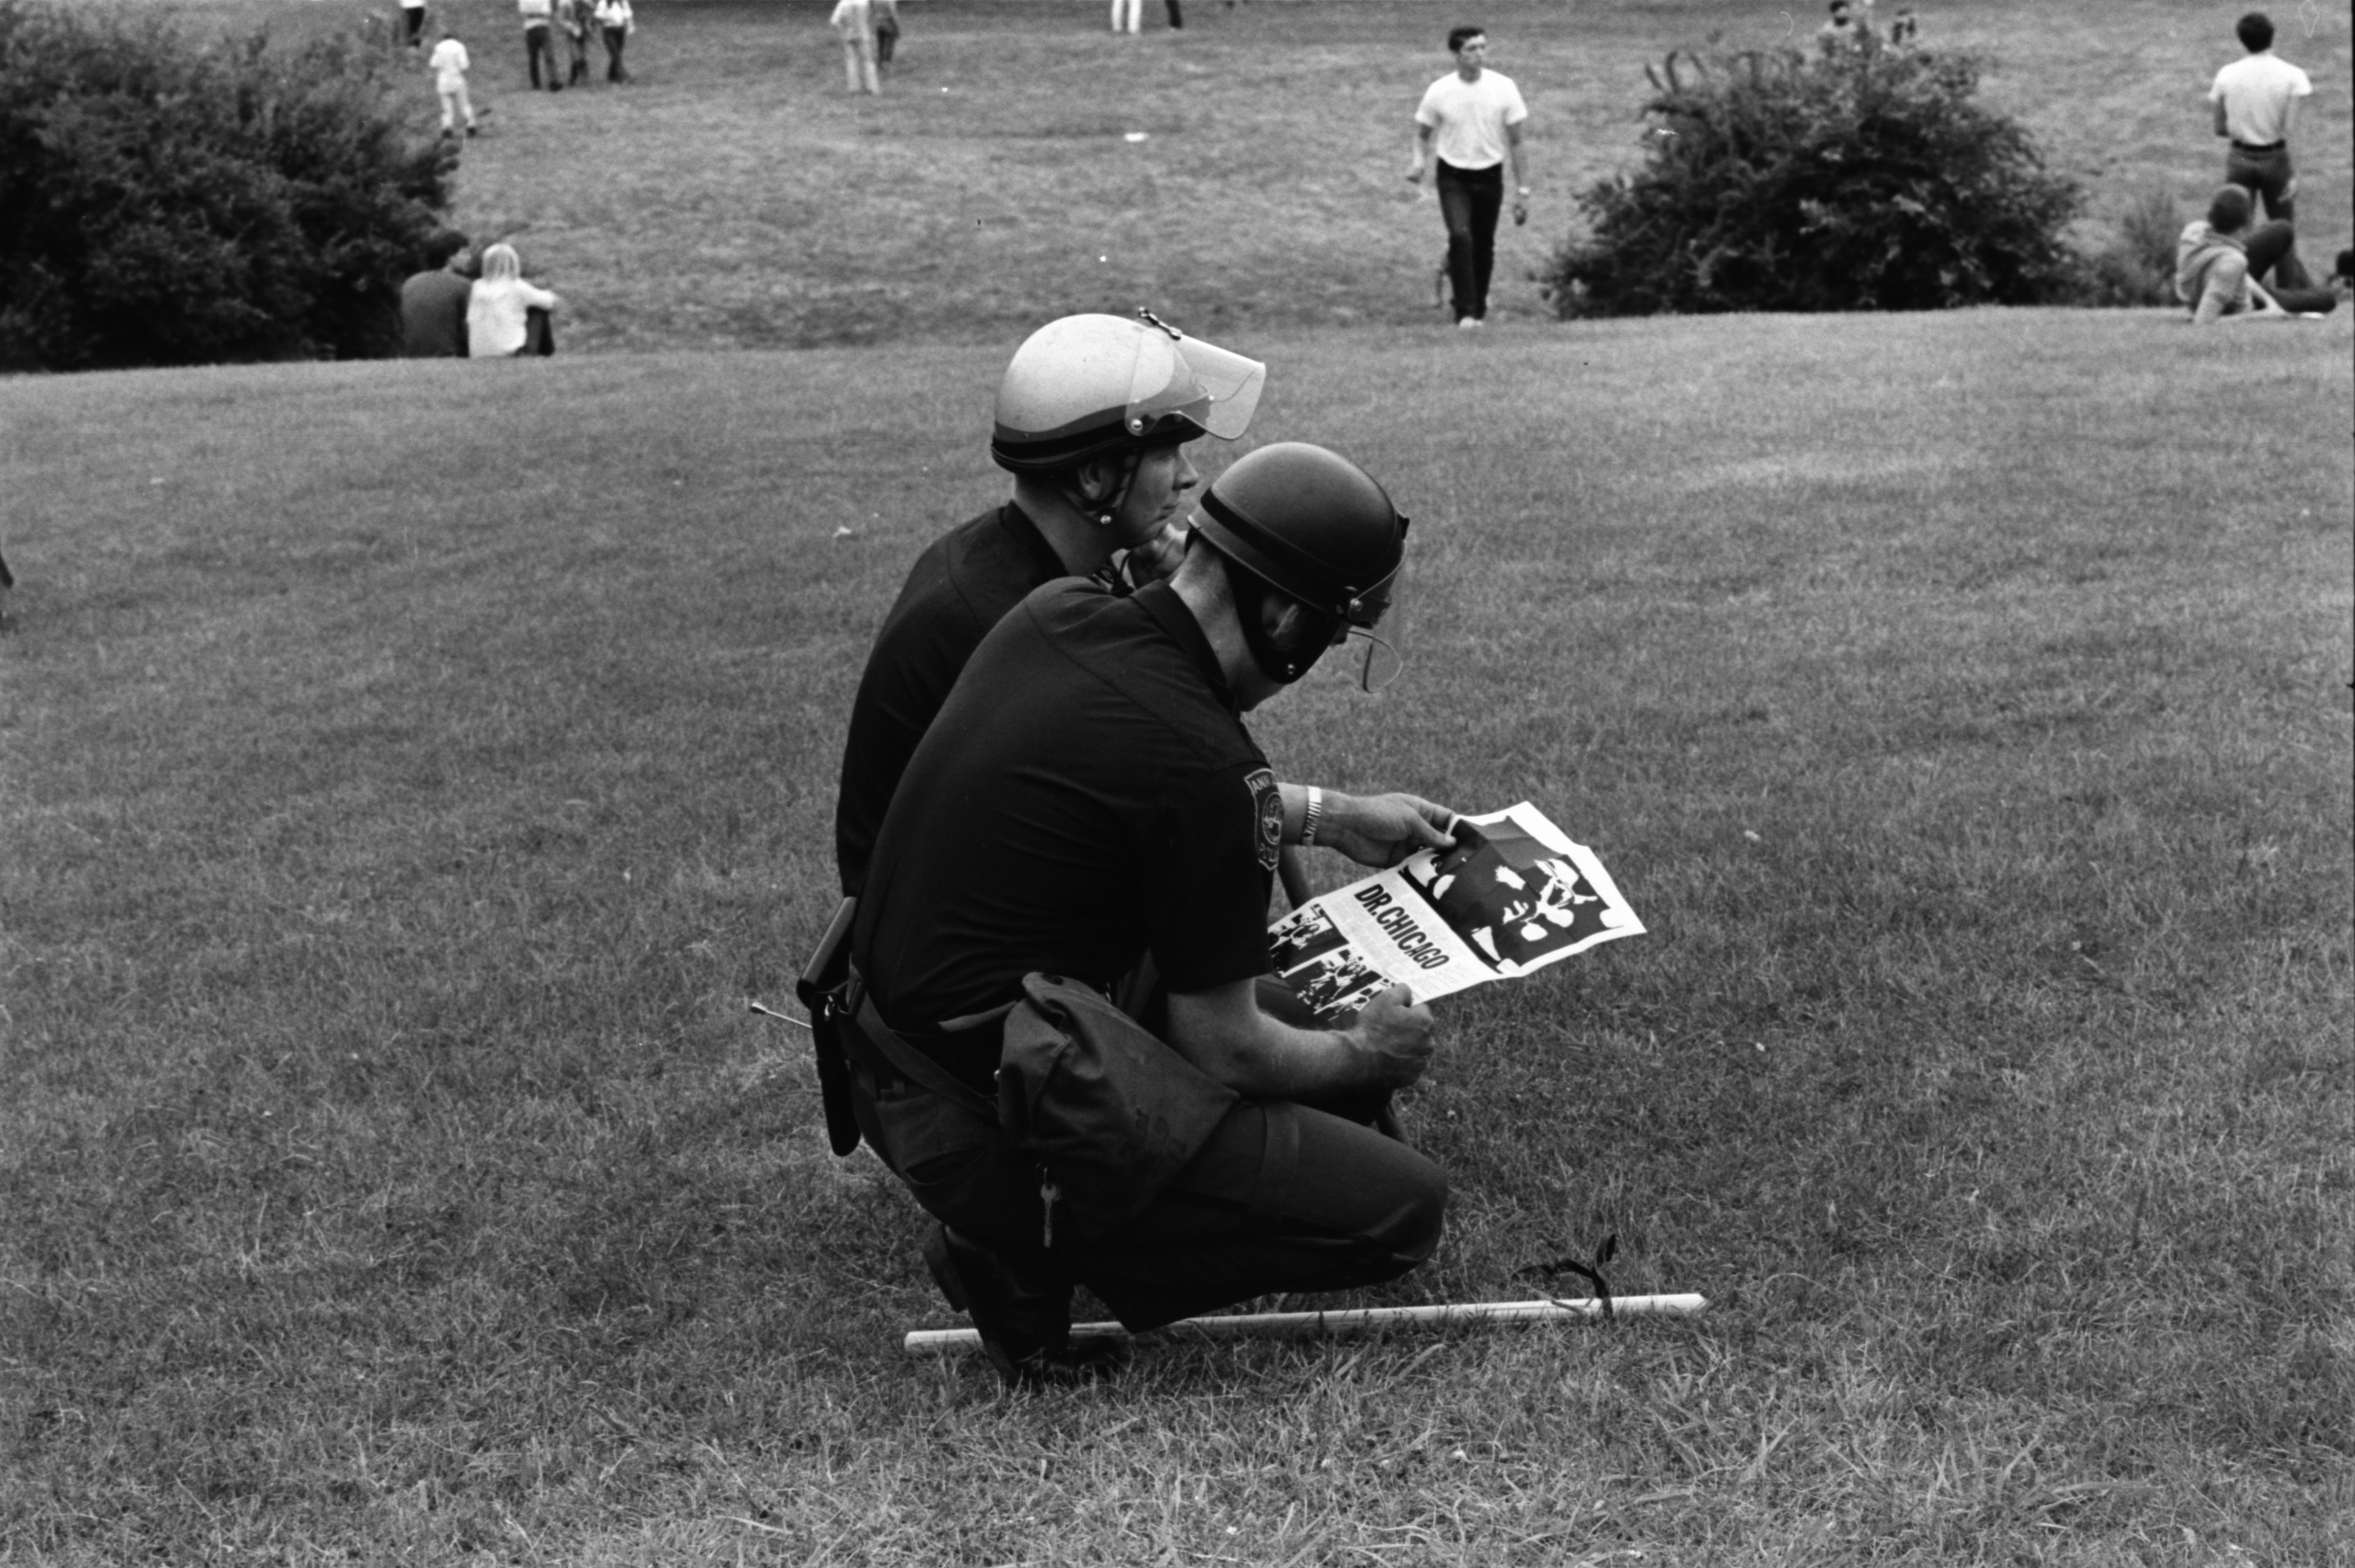 Police at Peace Picnic in the Arboretum, July 1969 image